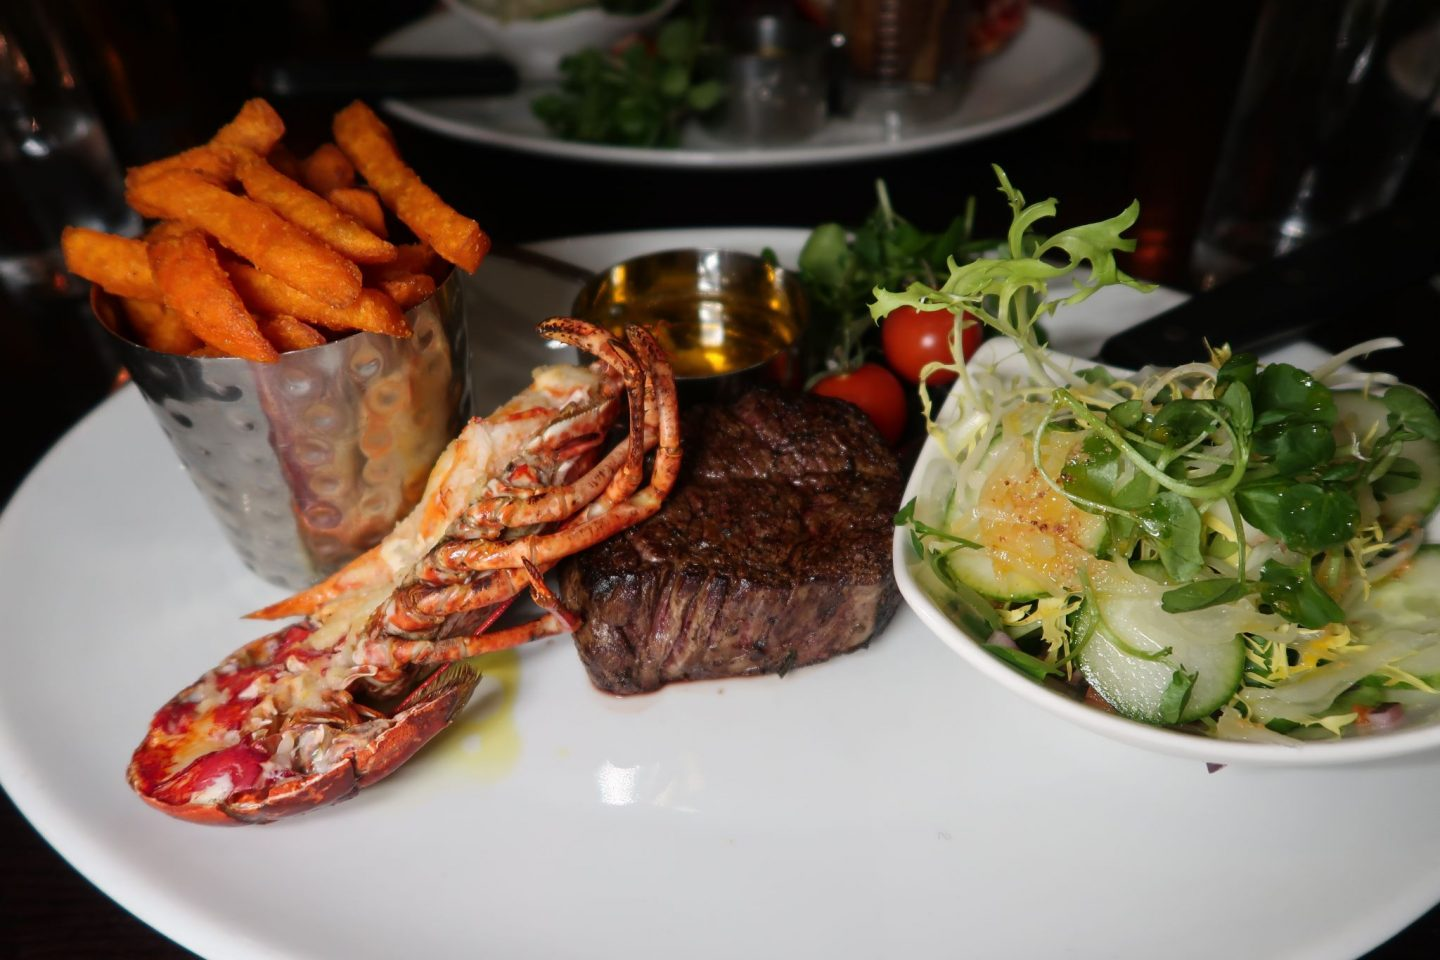 Lobster and Steak Surf and Turf Ramside Hall Rib Room